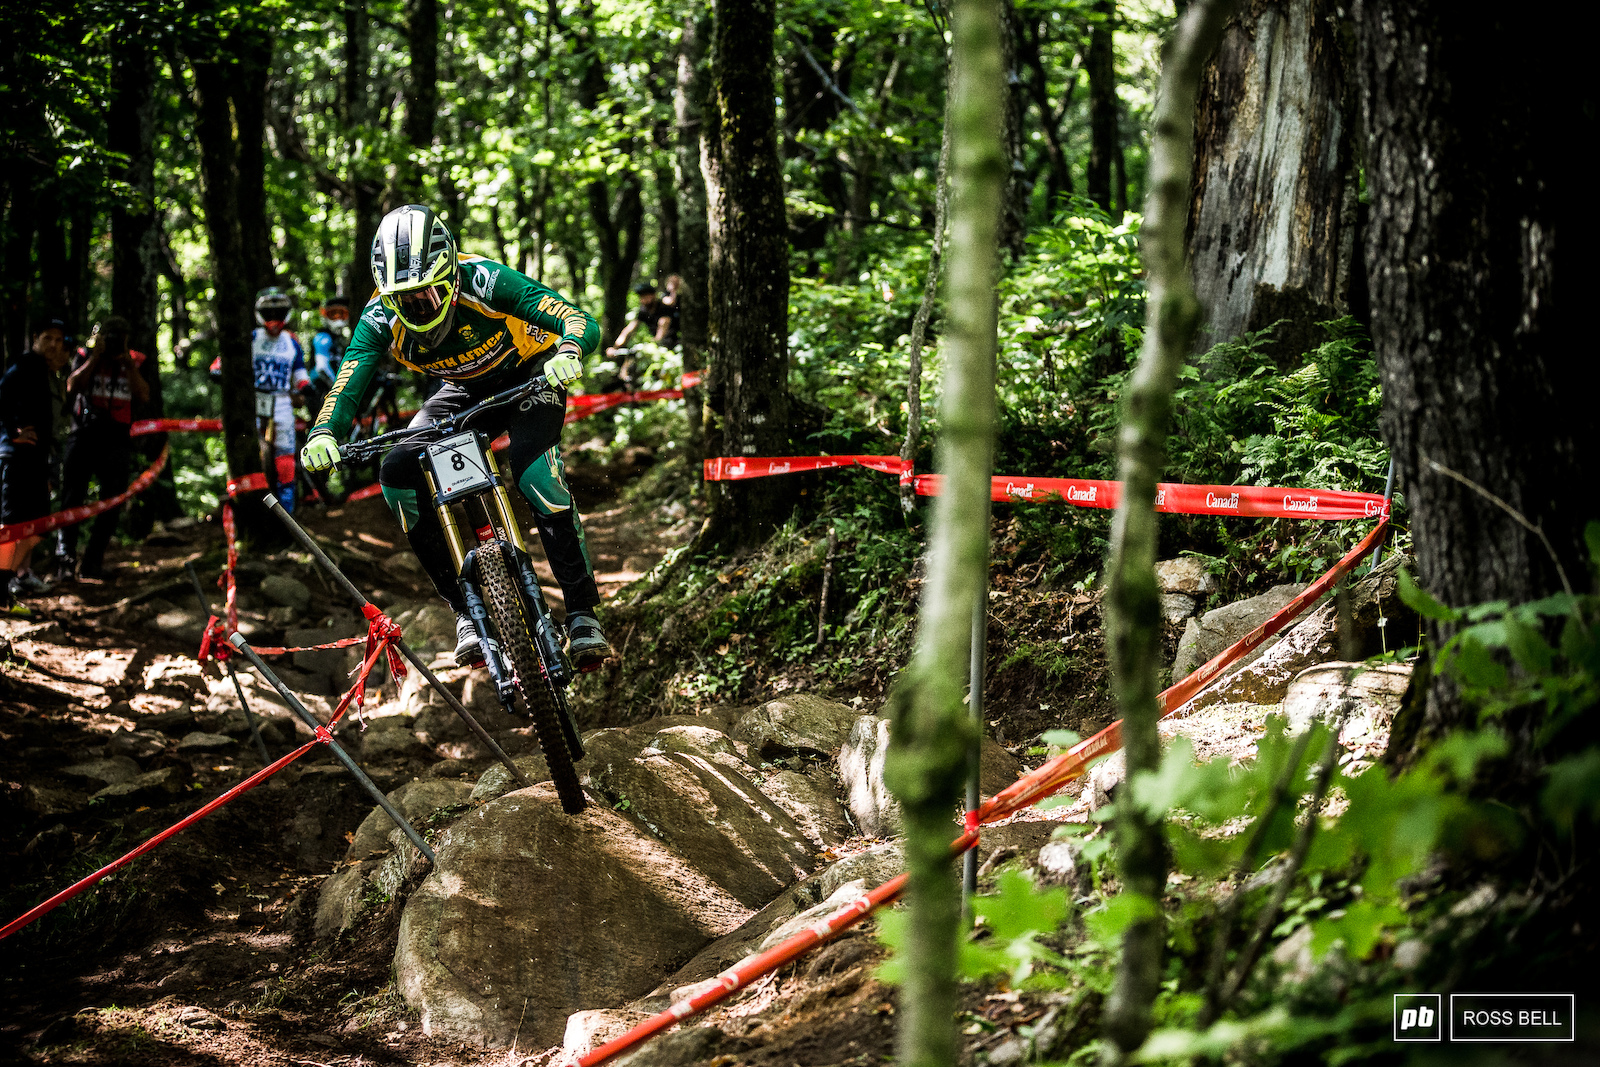 World Champs always brings out the best in Greg Minnaar what does the G.O.A.T have up his sleeve in Mont-Sainte-Anne